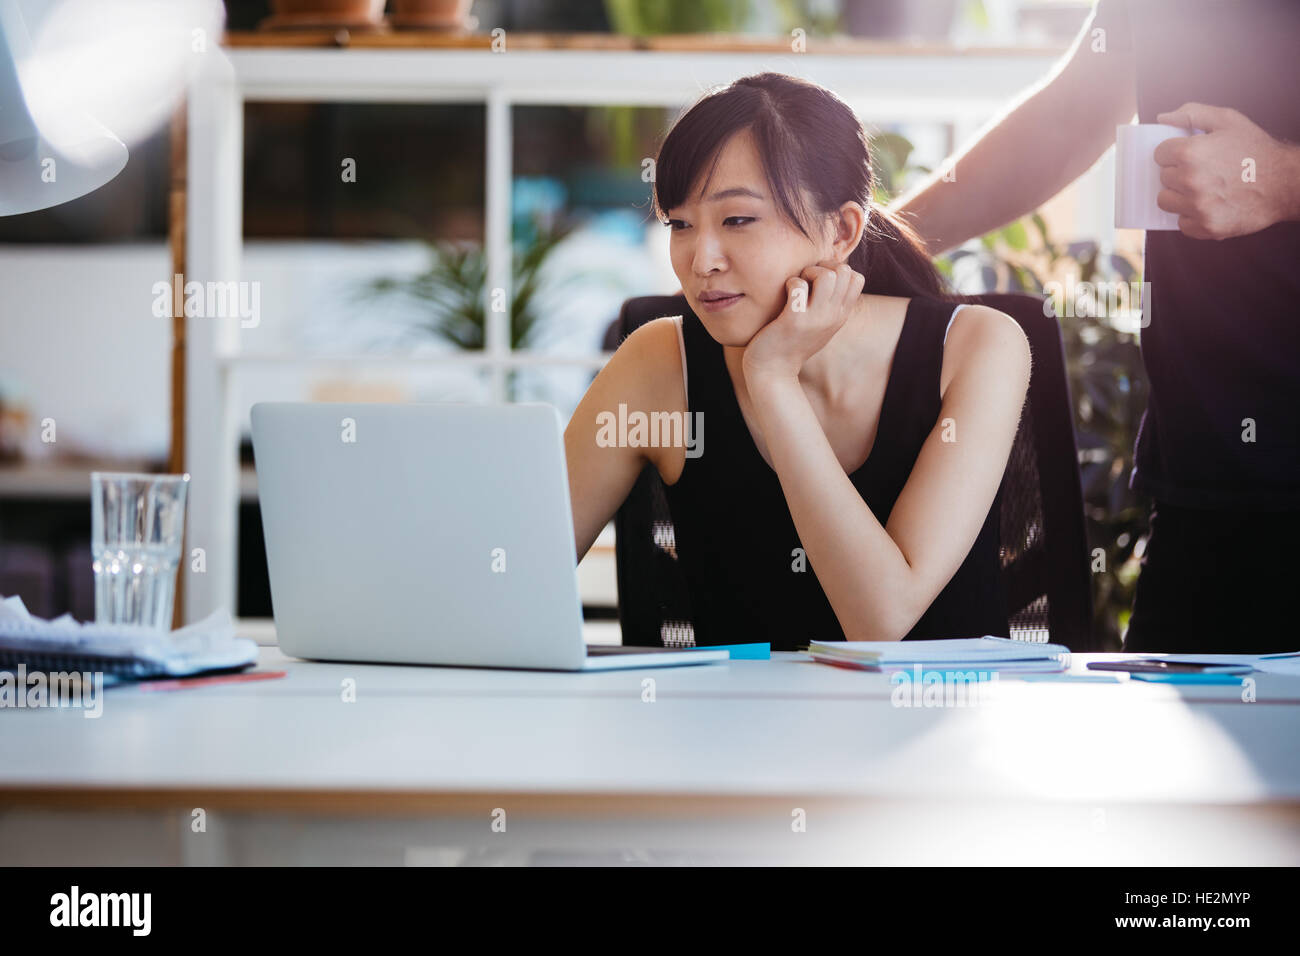 Shot of asian young woman sitting at her desk working on laptop with male colleague standing by. - Stock Image